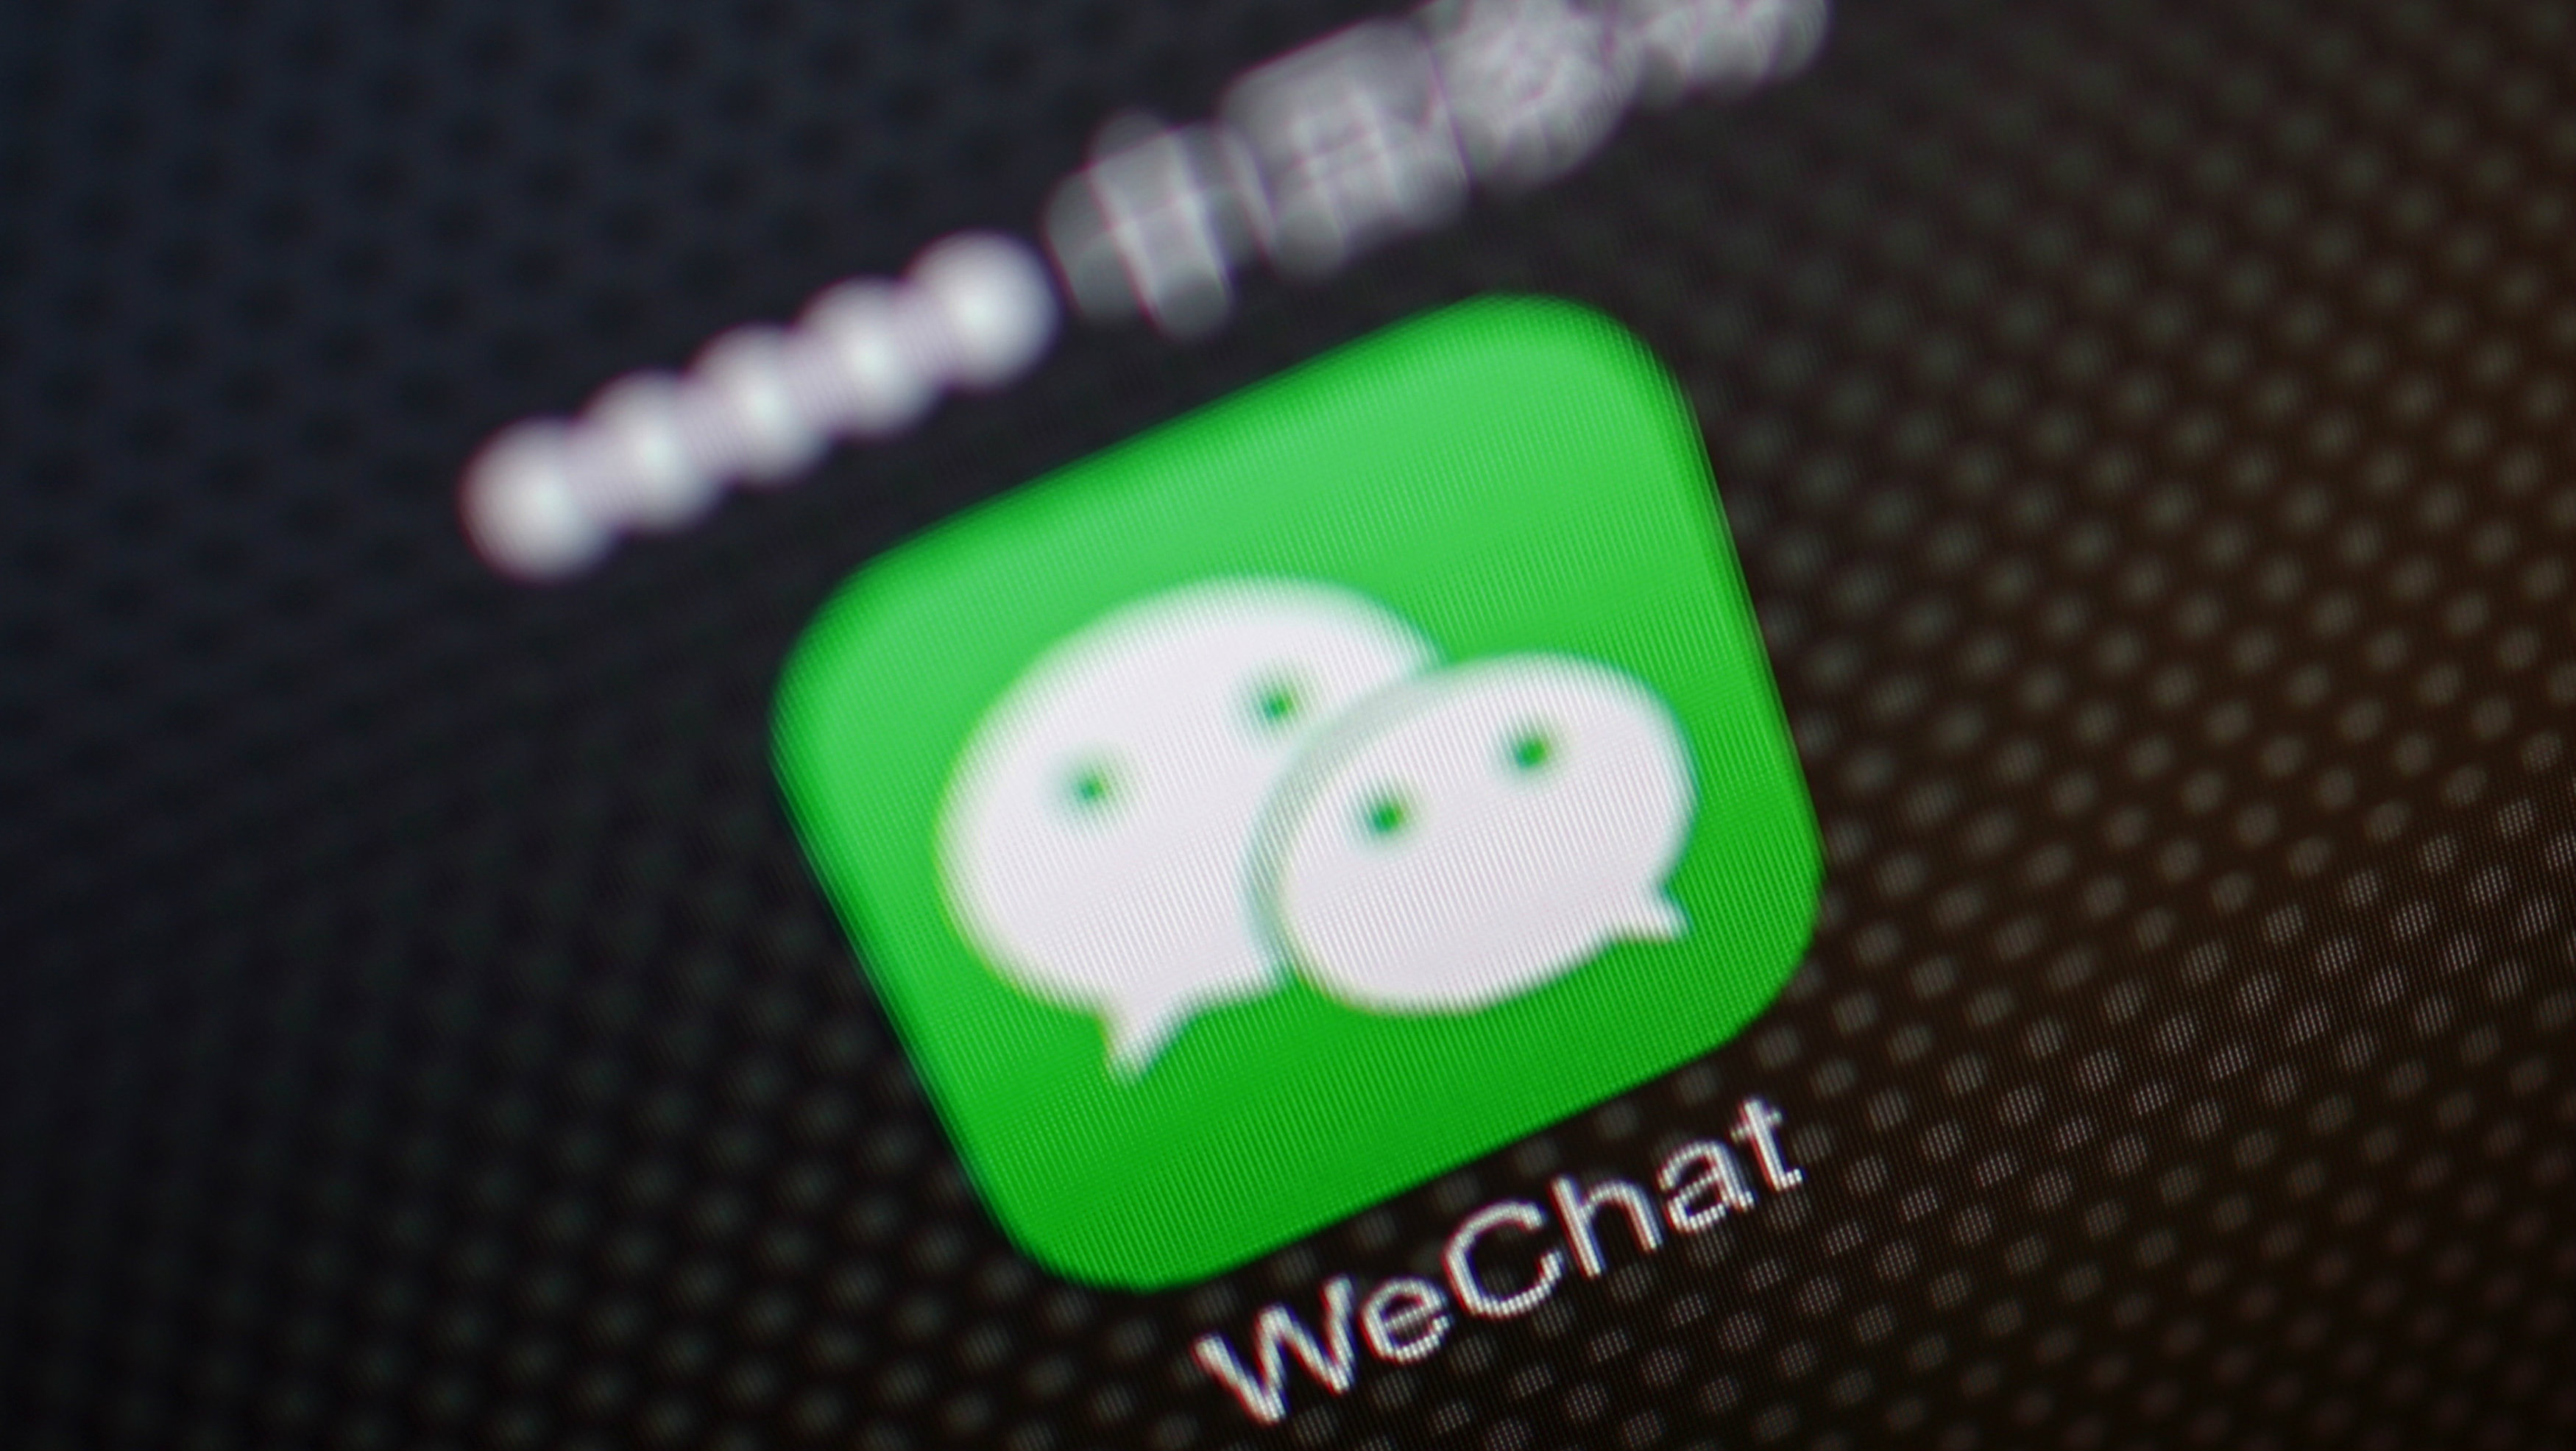 """A picture illustration shows a WeChat app icon in Beijing, December 5, 2013. An unprecedented Nov. 14 leak of China's Communist Party reform plans fuelled China's biggest stock market rally in two months as it spread on microblogs and passed from smartphone to smartphone on WeChat, a three-year-old social messaging app developed by Tencent Holdings Ltd. WeChat, or Weixin in Chinese, meaning """"micromessage"""", leapt from 121 million global monthly active users at the end of September 2012 to 272 million in just a year. It has quickly become the news source of choice for savvy mobile users in China, where a small army of censors scrub the country's Internet of politically sensitive news and """"harmful"""" speech."""